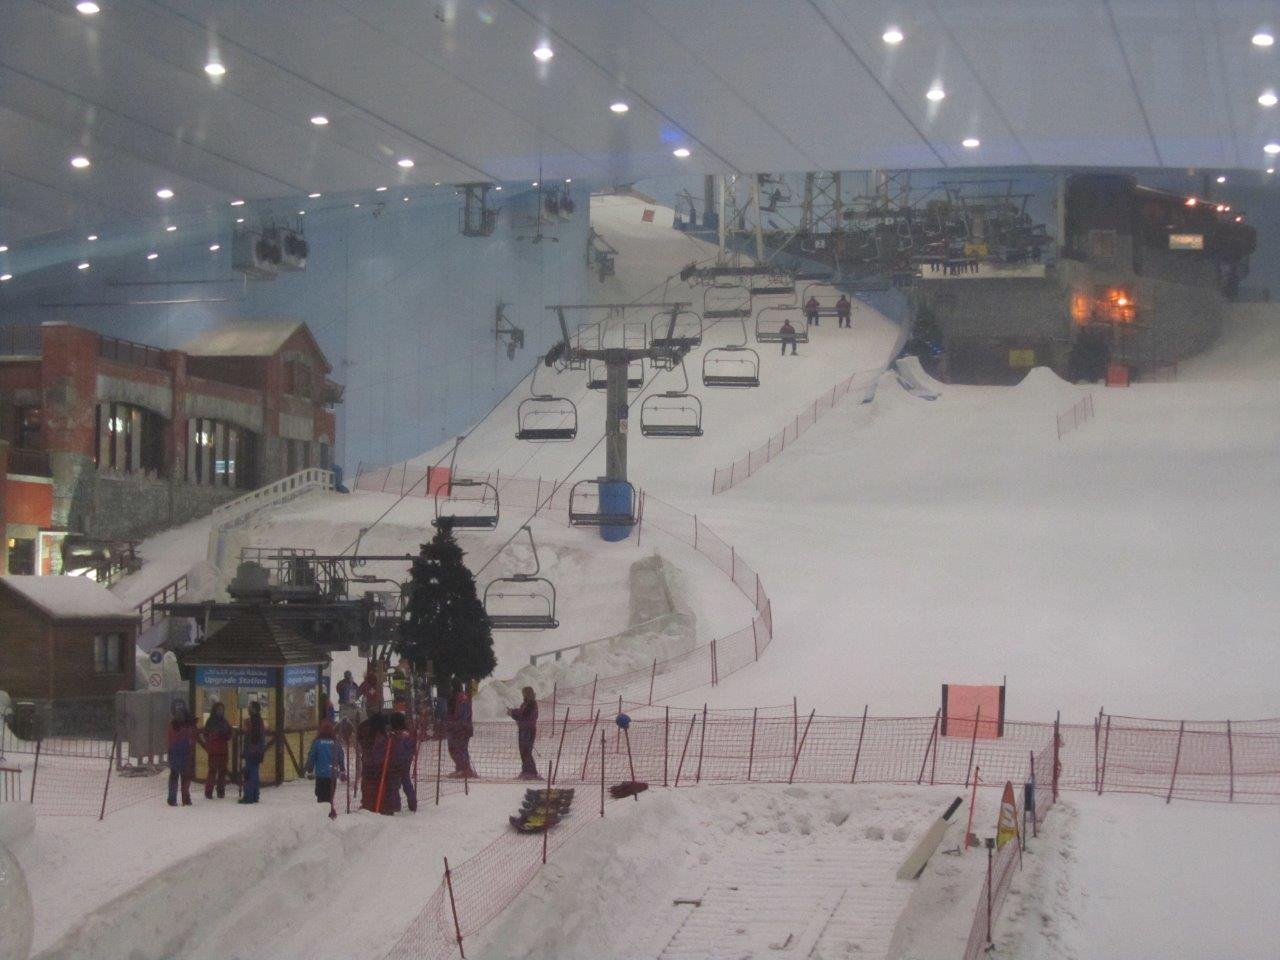 Dubai Mall Indoor Ski Slope 10